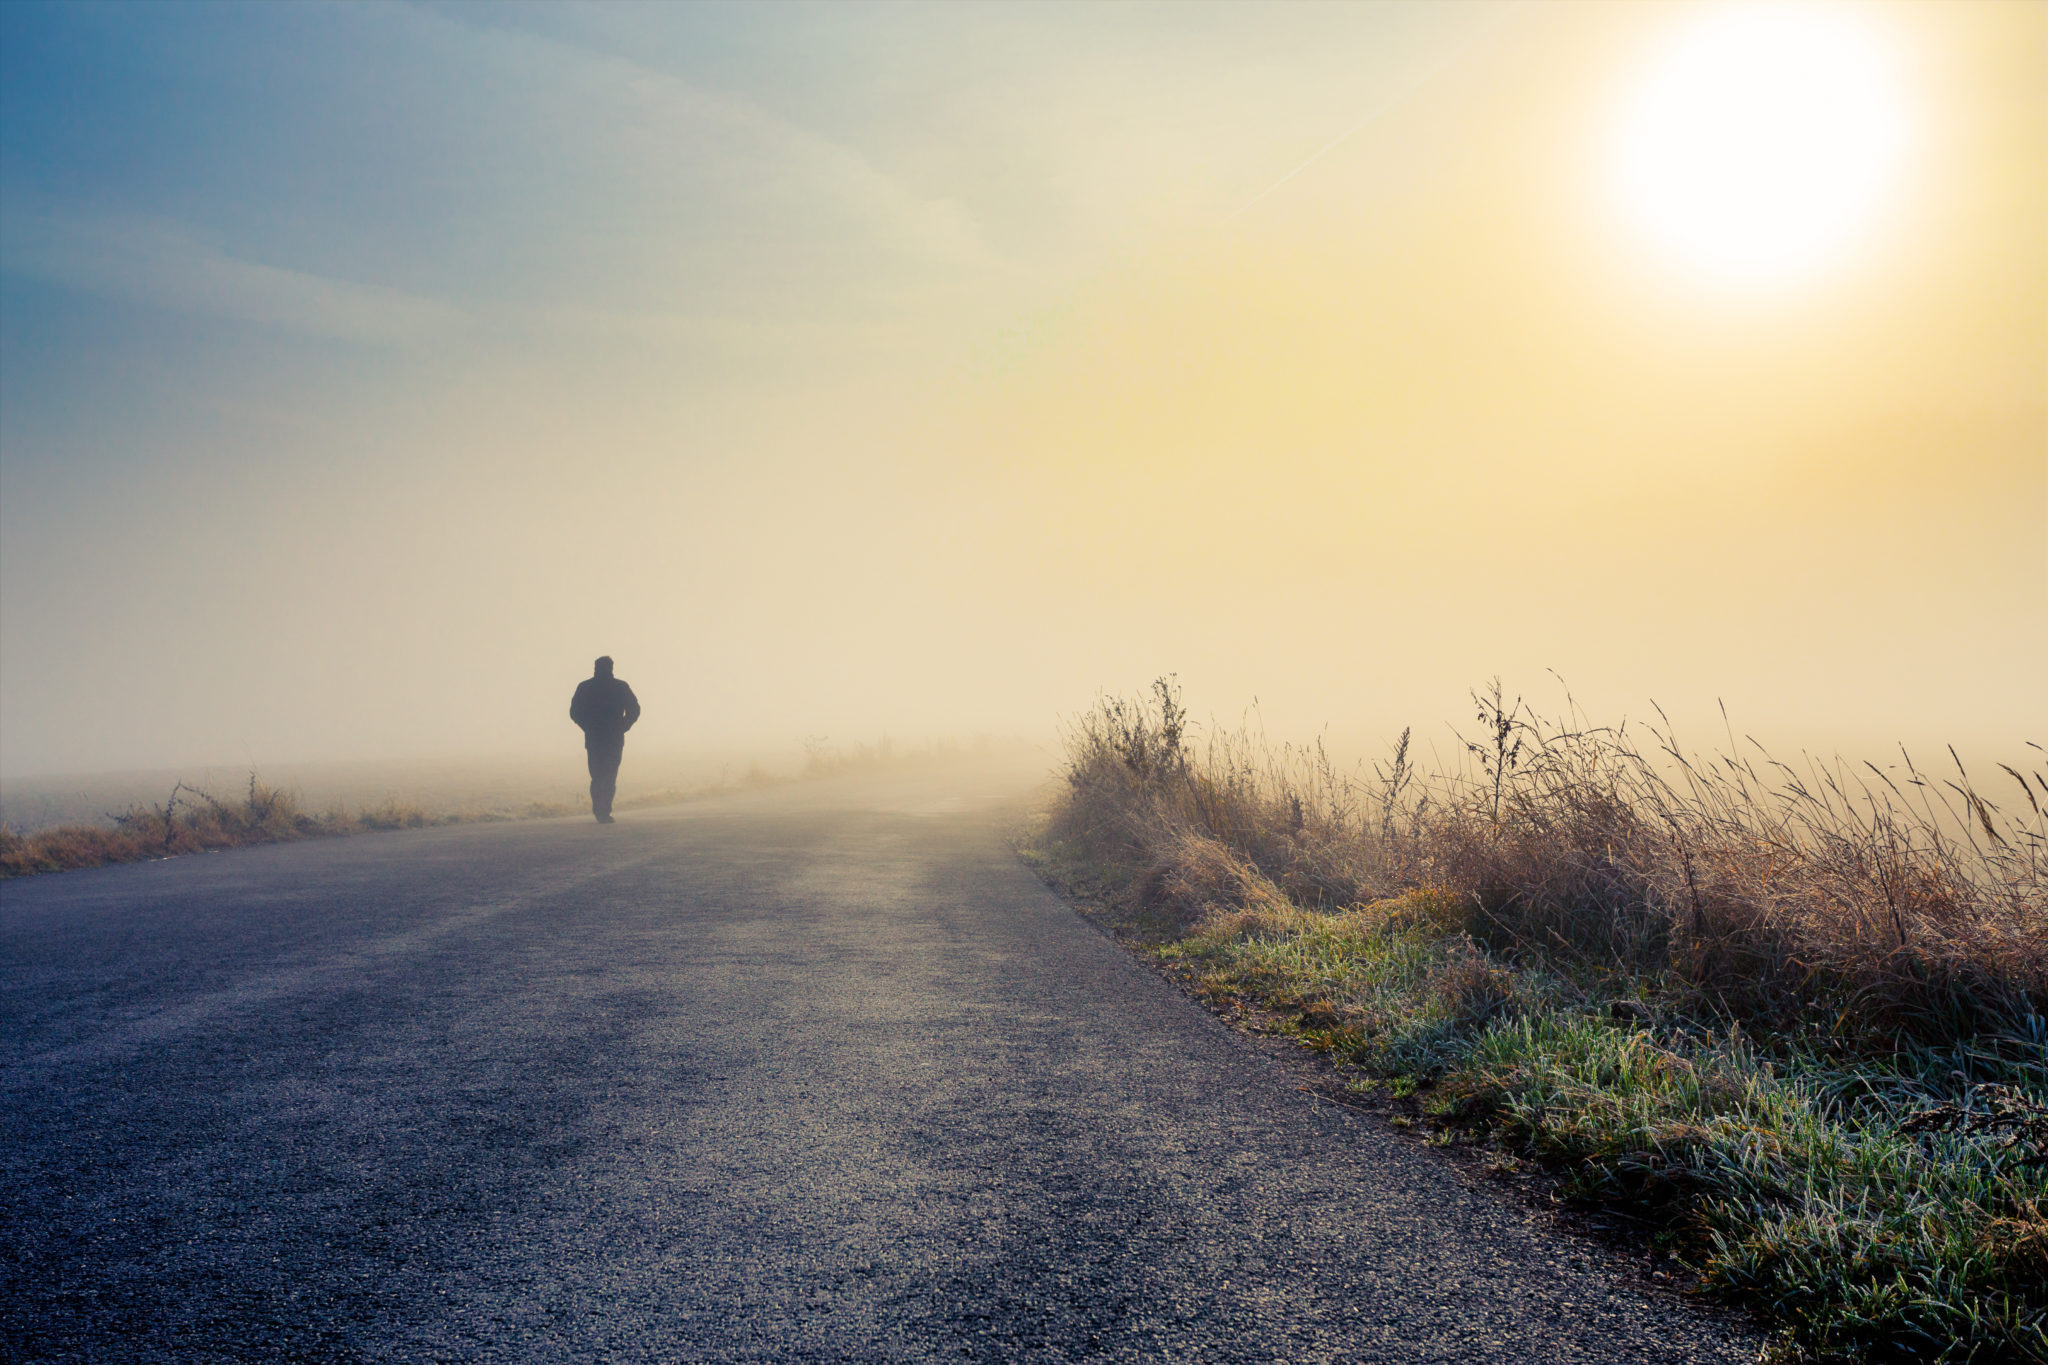 When You Lose, You Win: The Power of Perseverance and Pursuing Your Dreams